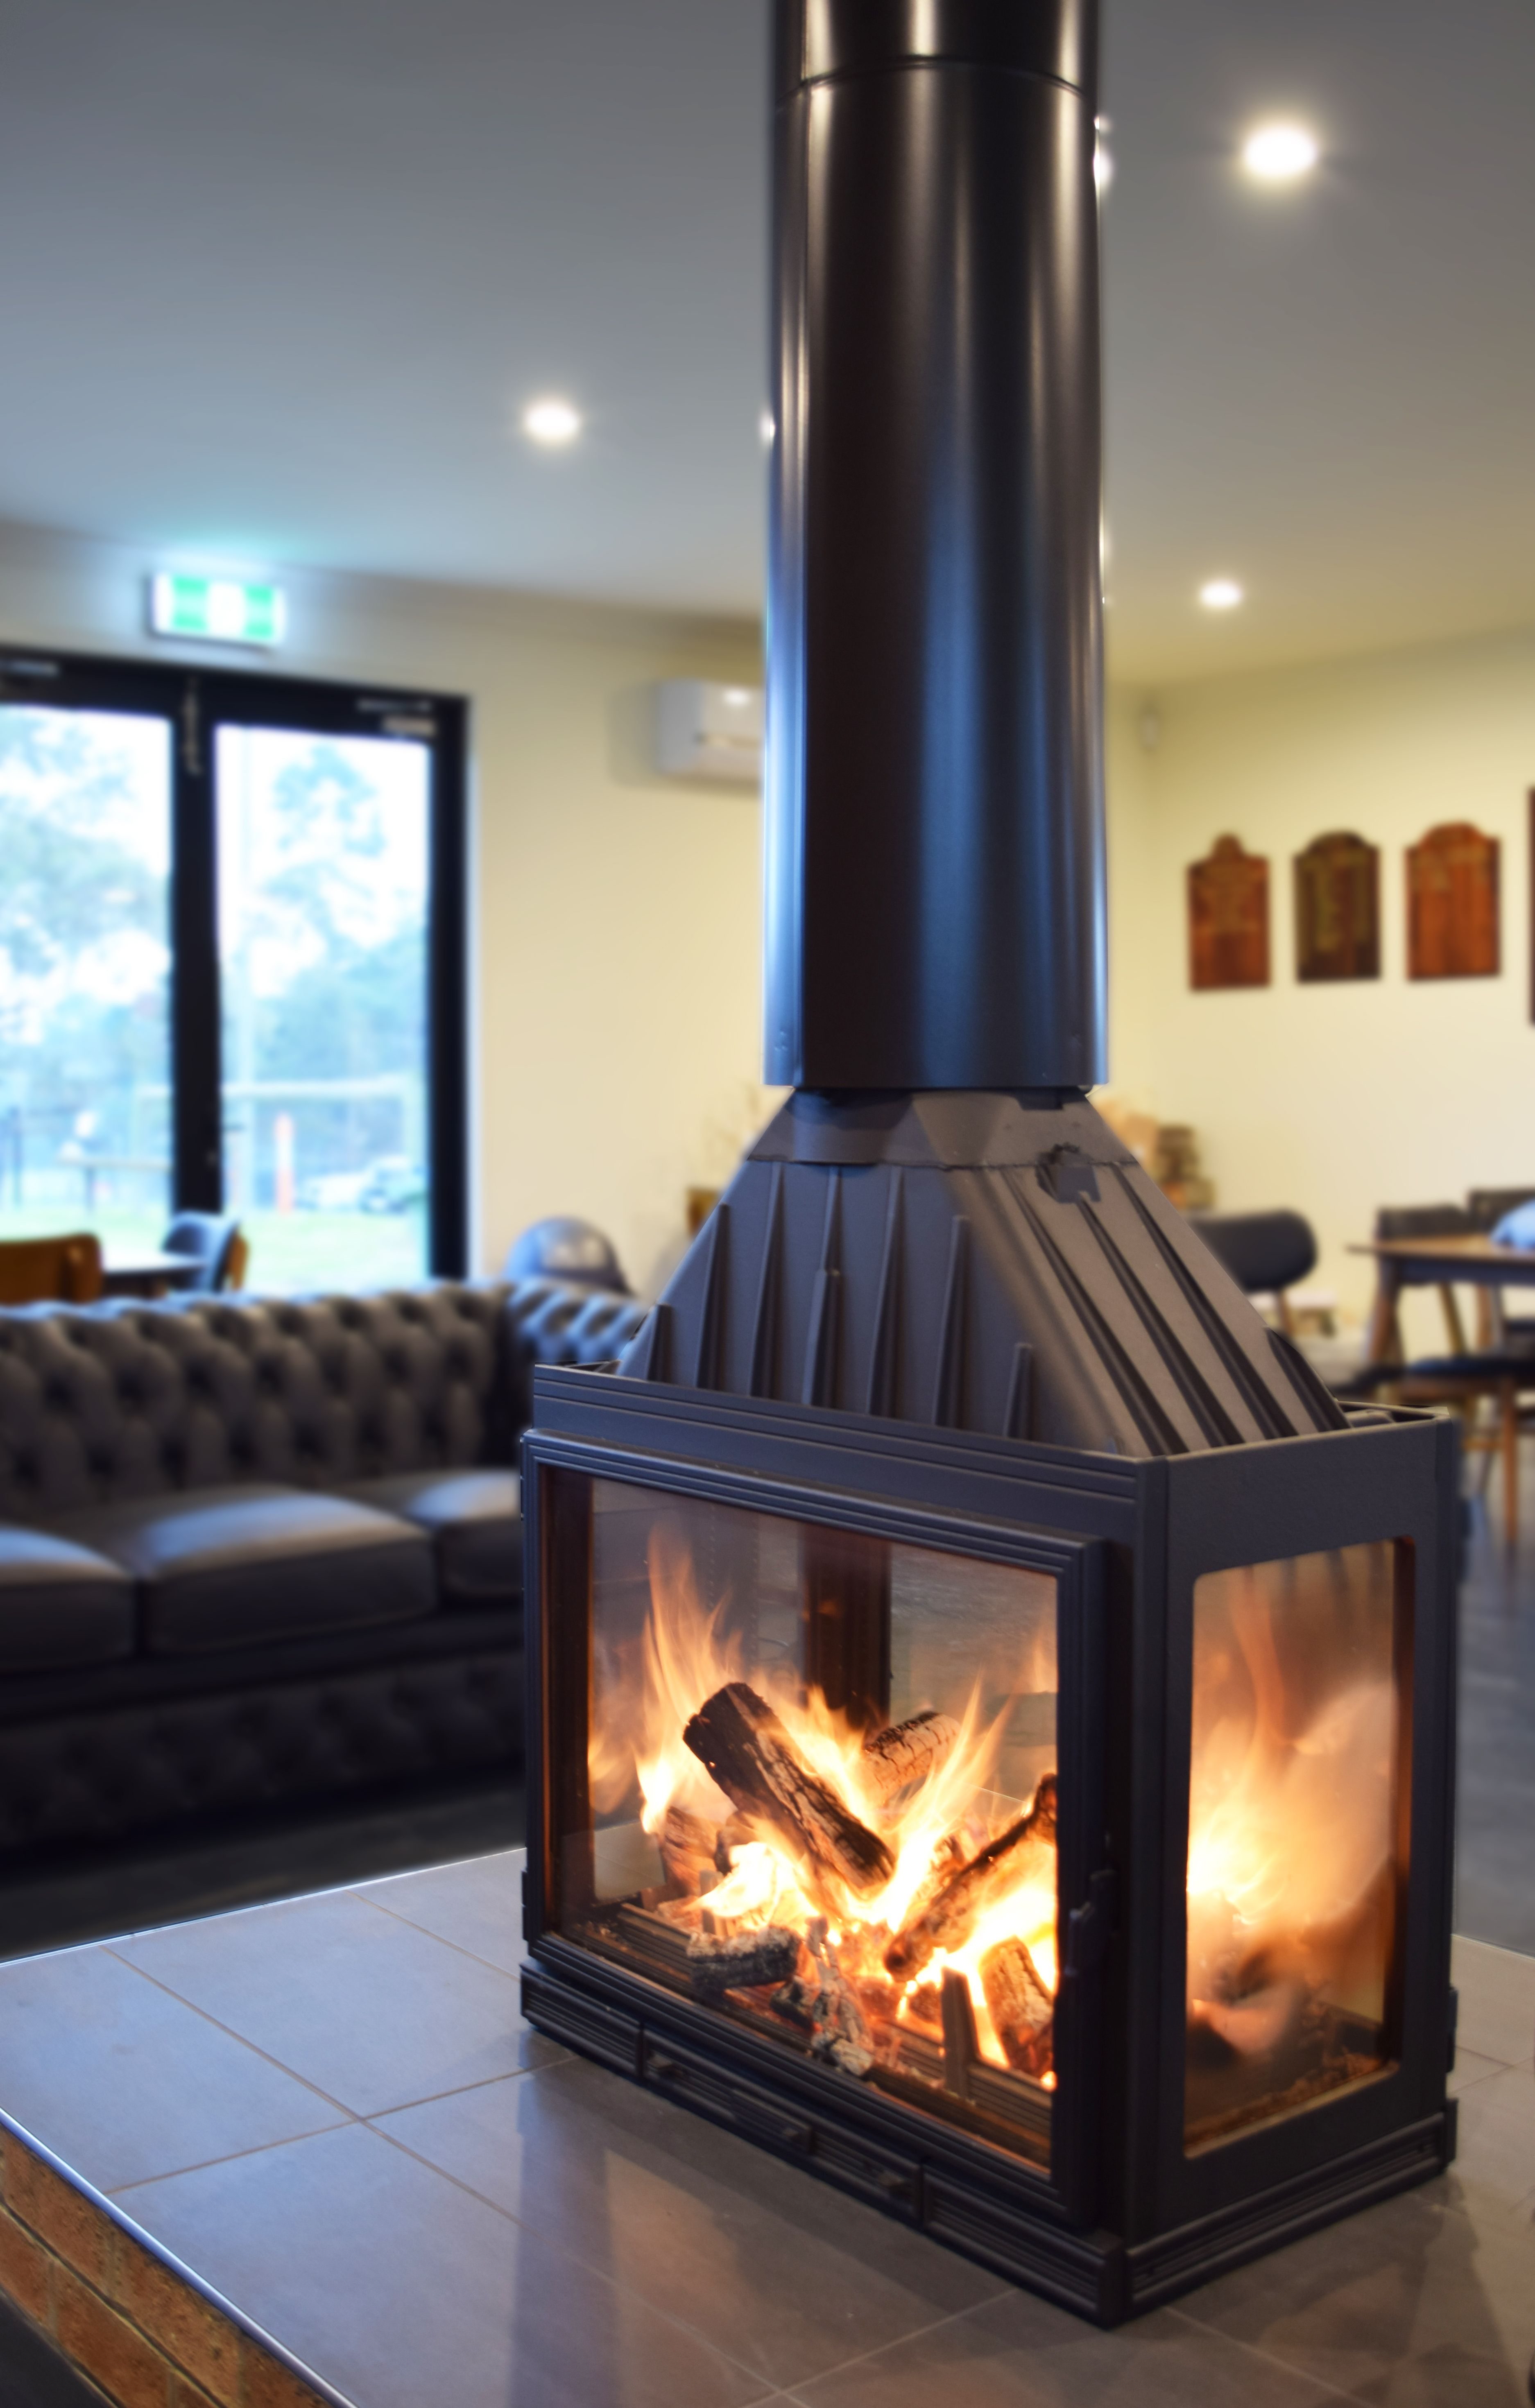 Australia S First Four Sided Wood Heater Beautiful From All Angles With Its Pure Cast Iron Construction T Wood Heater Freestanding Fireplace Glass Fireplace